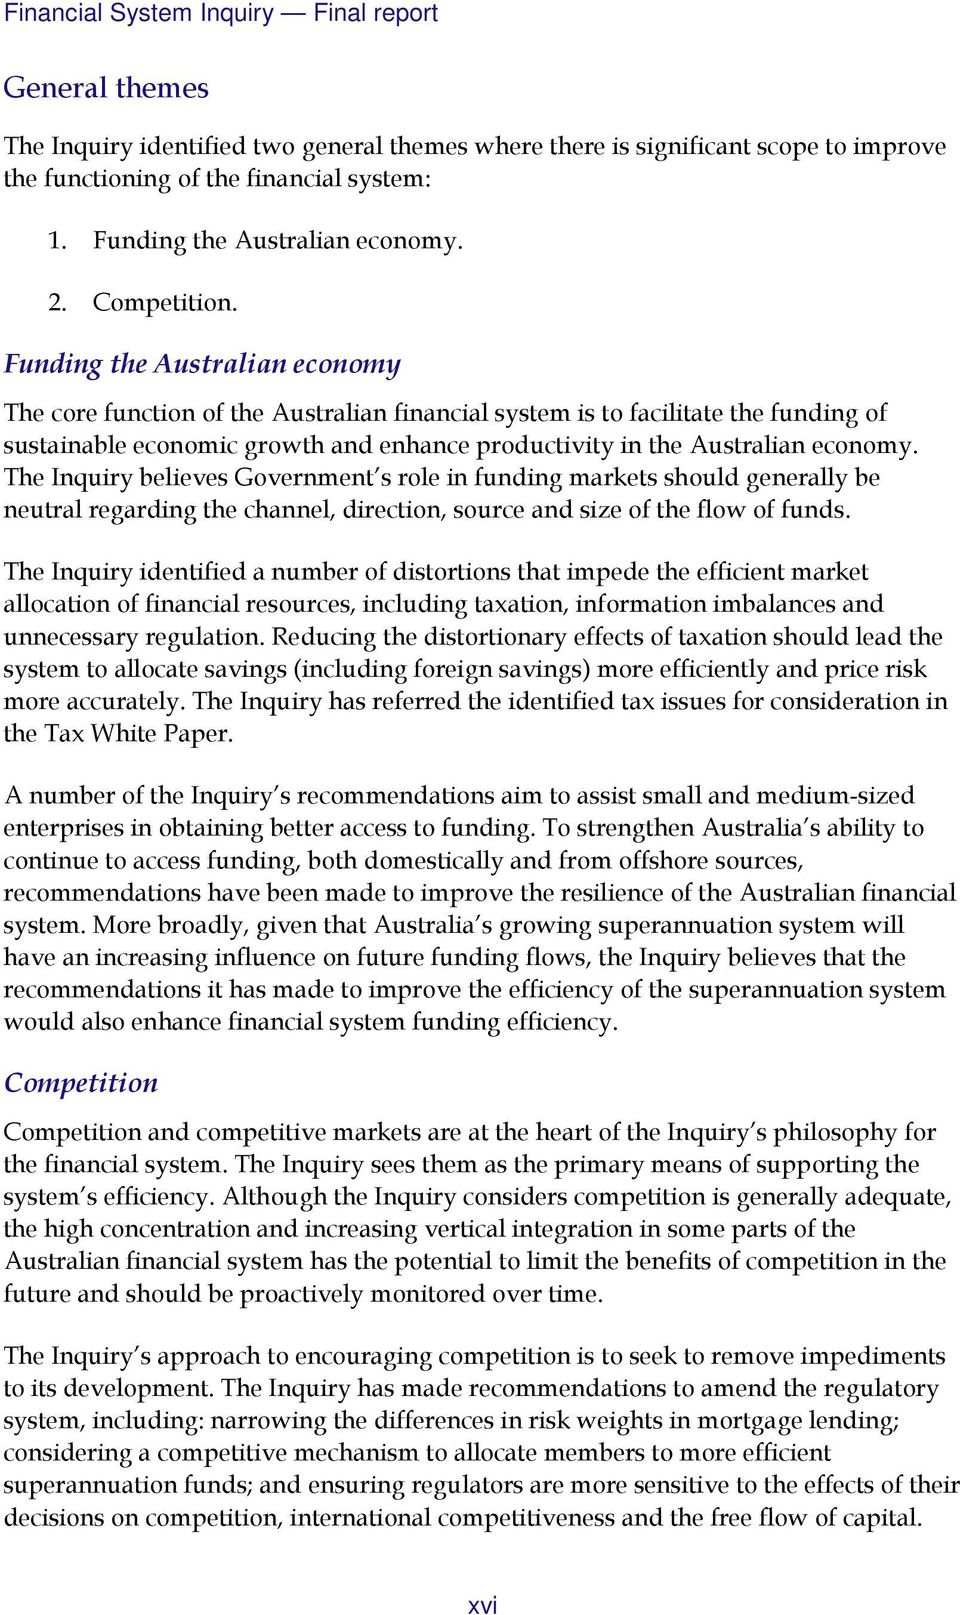 Funding the Australian economy The core function of the Australian financial system is to facilitate the funding of sustainable economic growth and enhance productivity in the Australian economy.